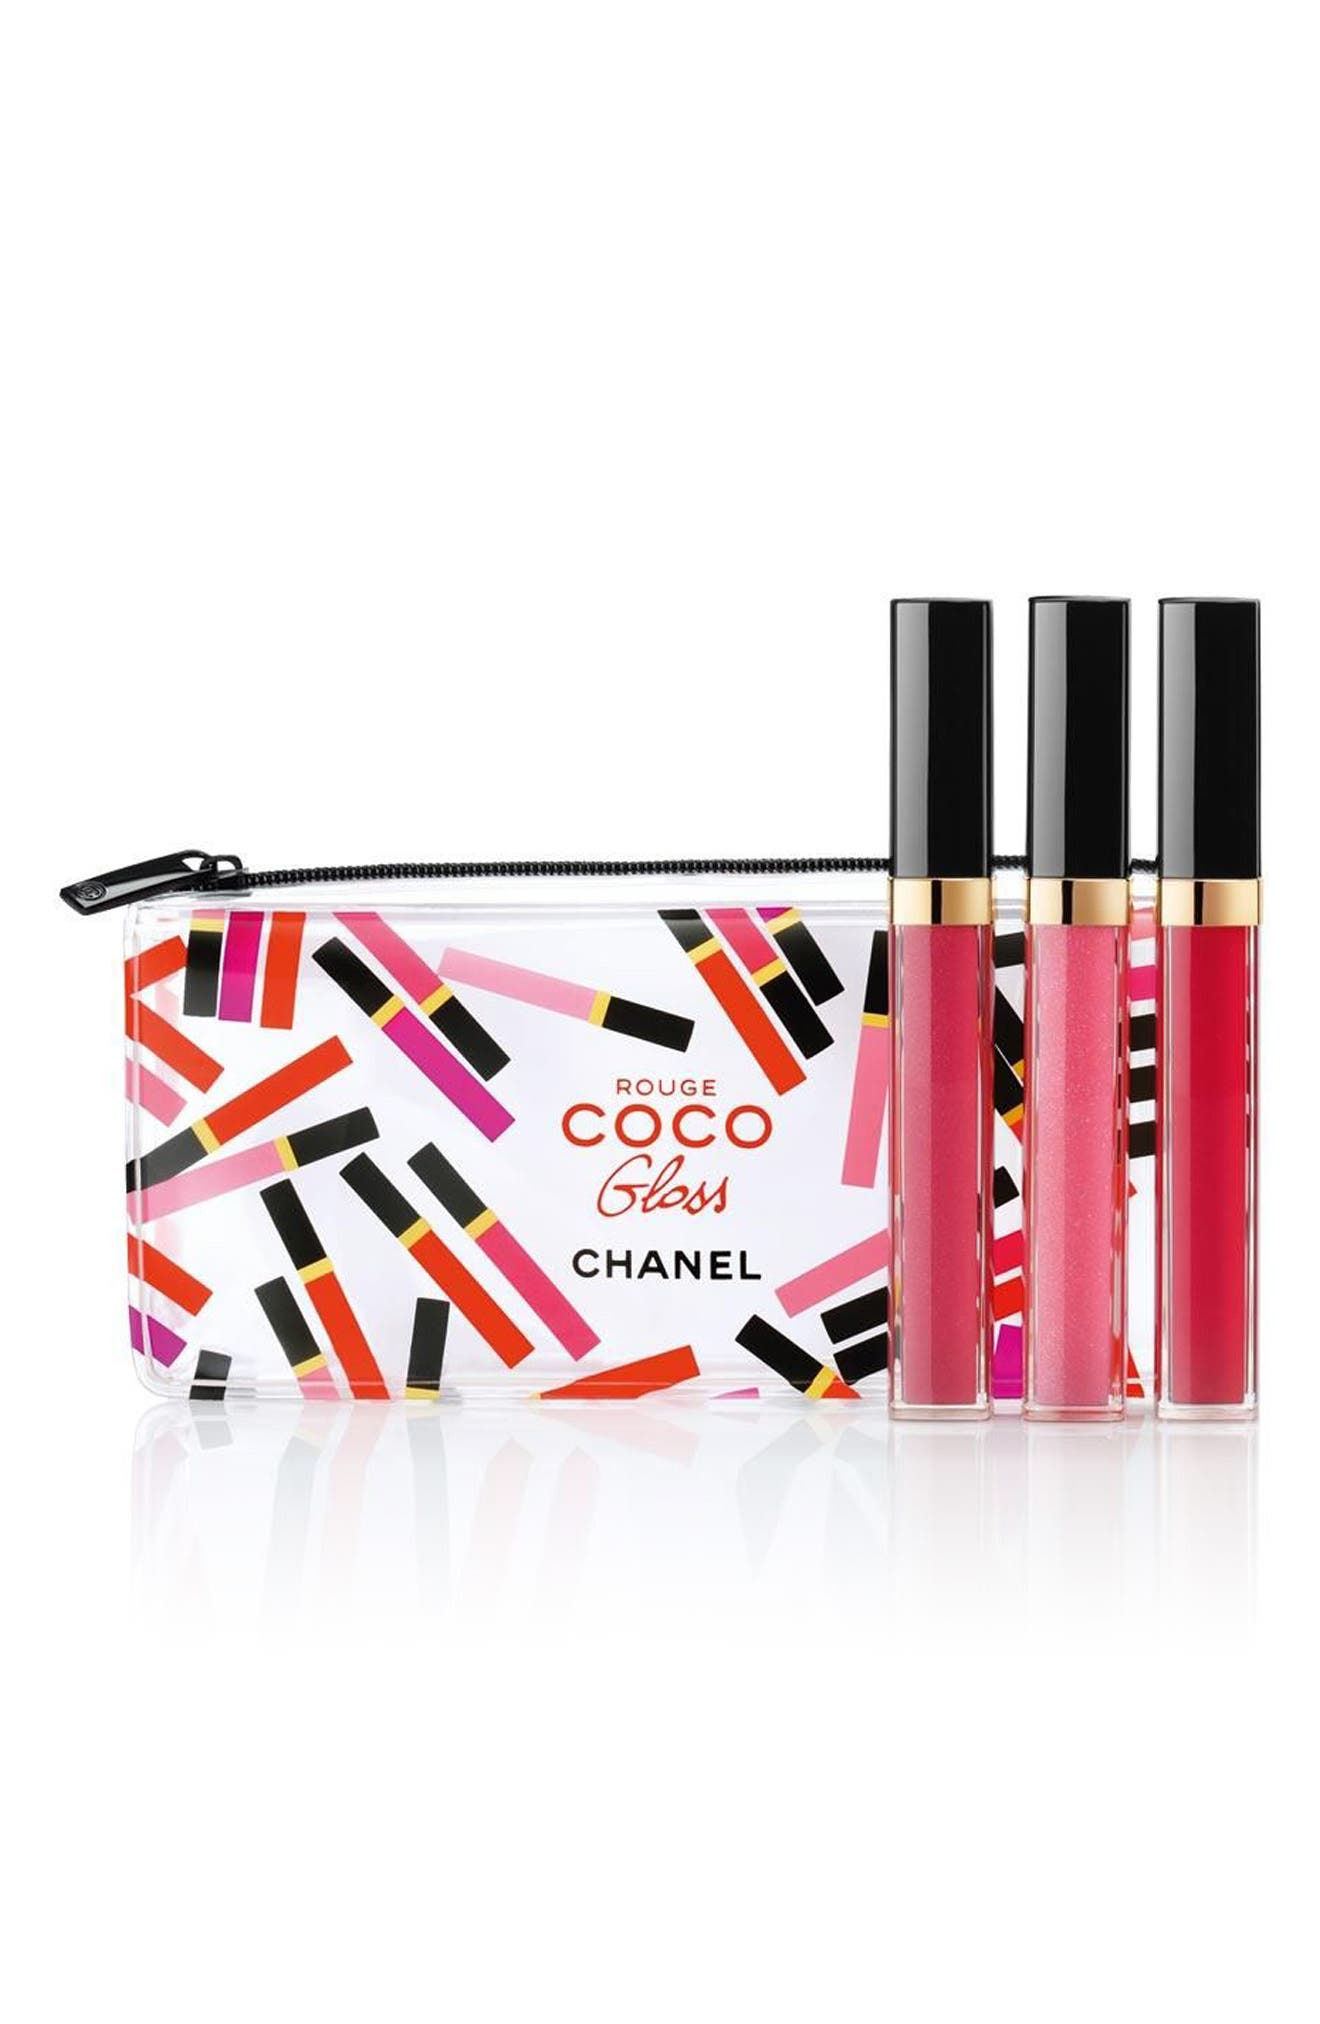 CHANEL BRIGHTS ROUGE COCO GLOSS Moisturizing Glossimer Trio